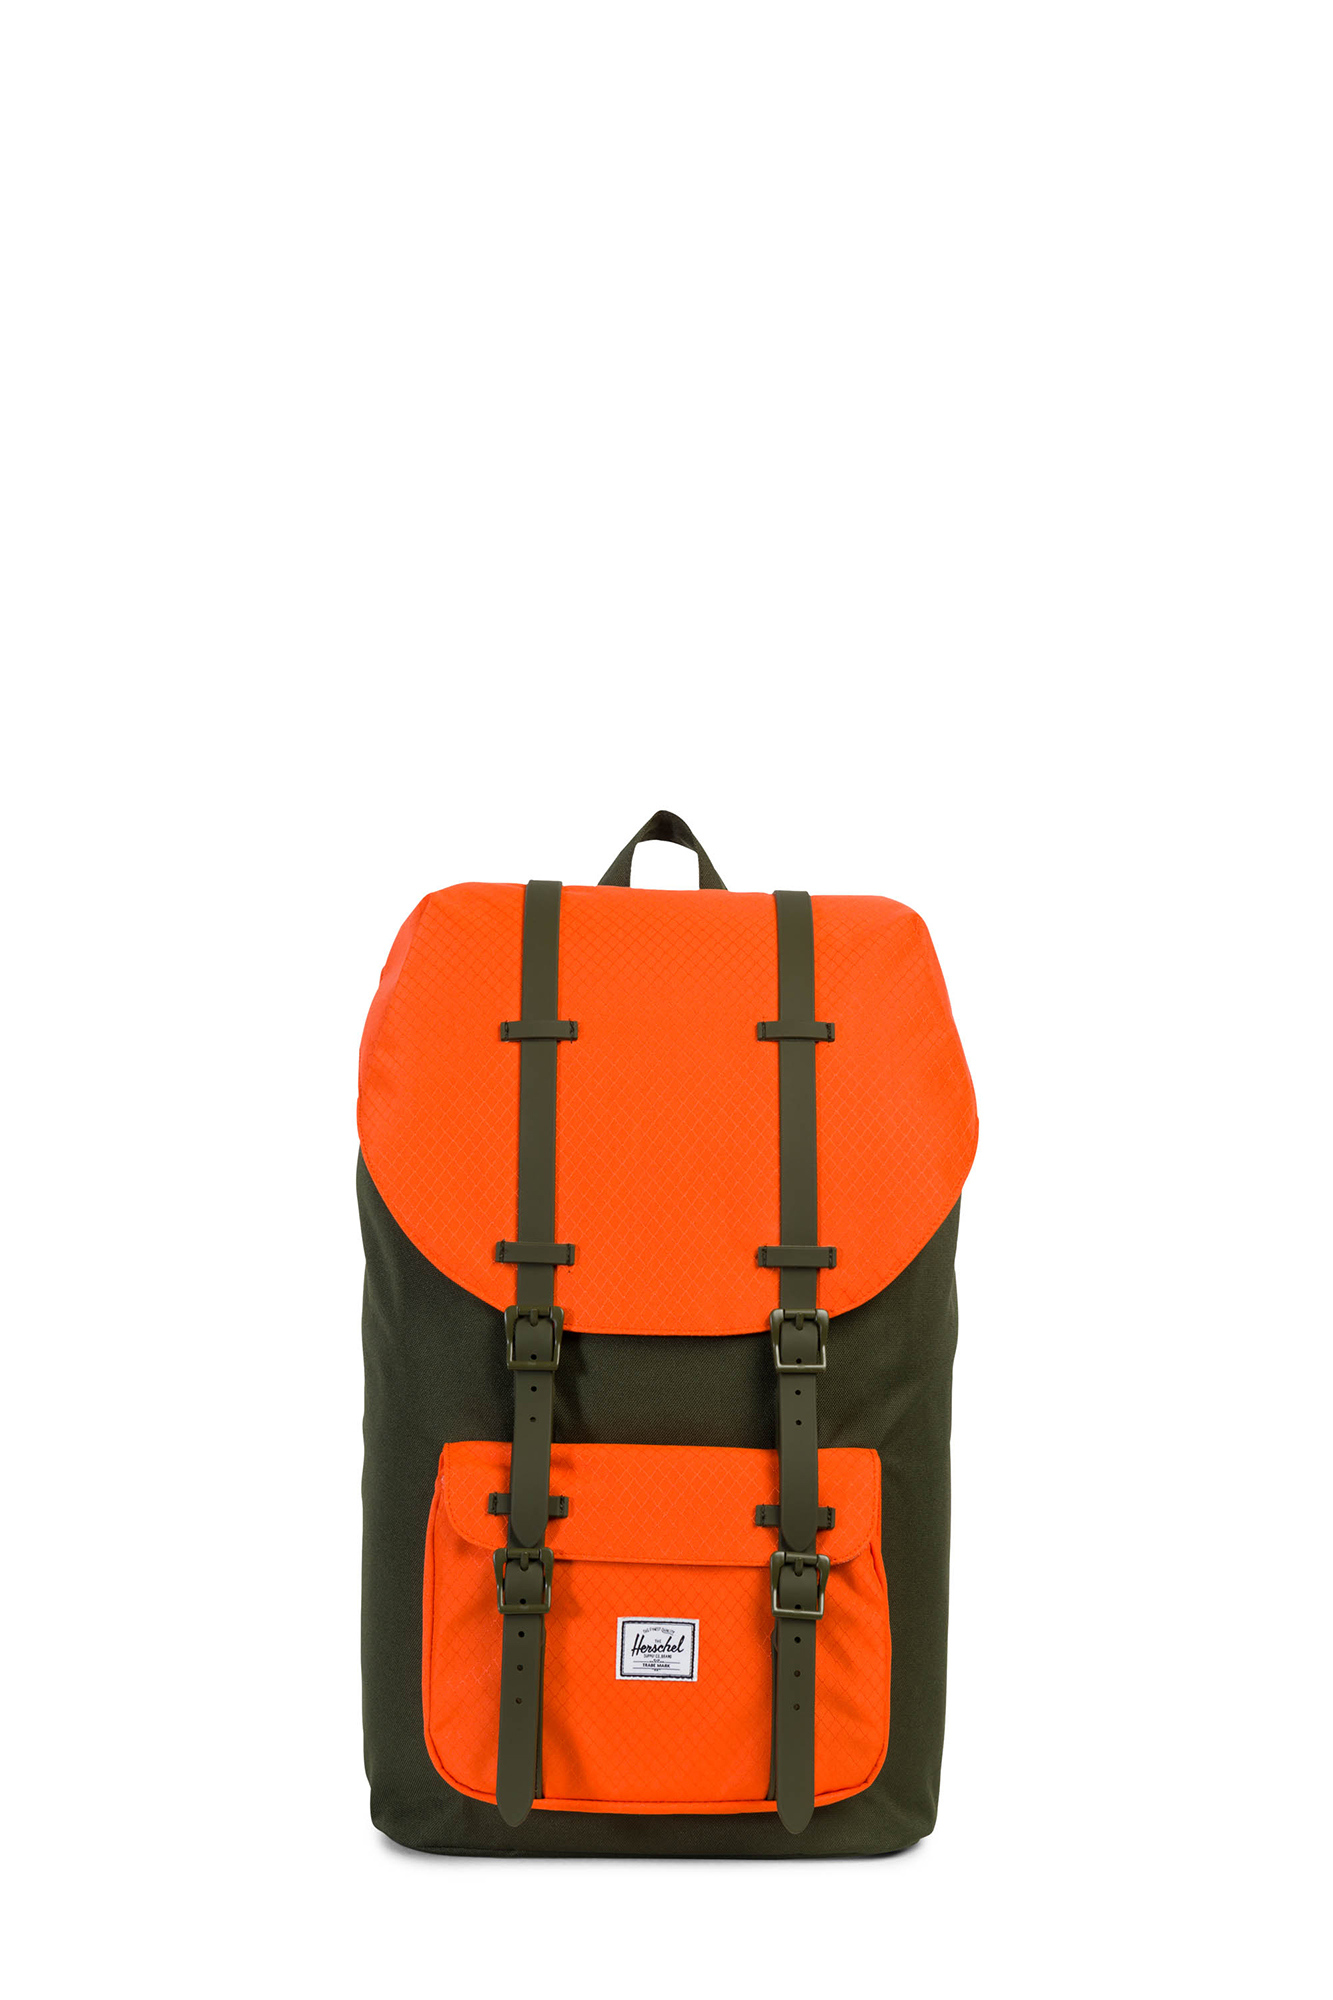 Herschel - Little America Forest backpack.